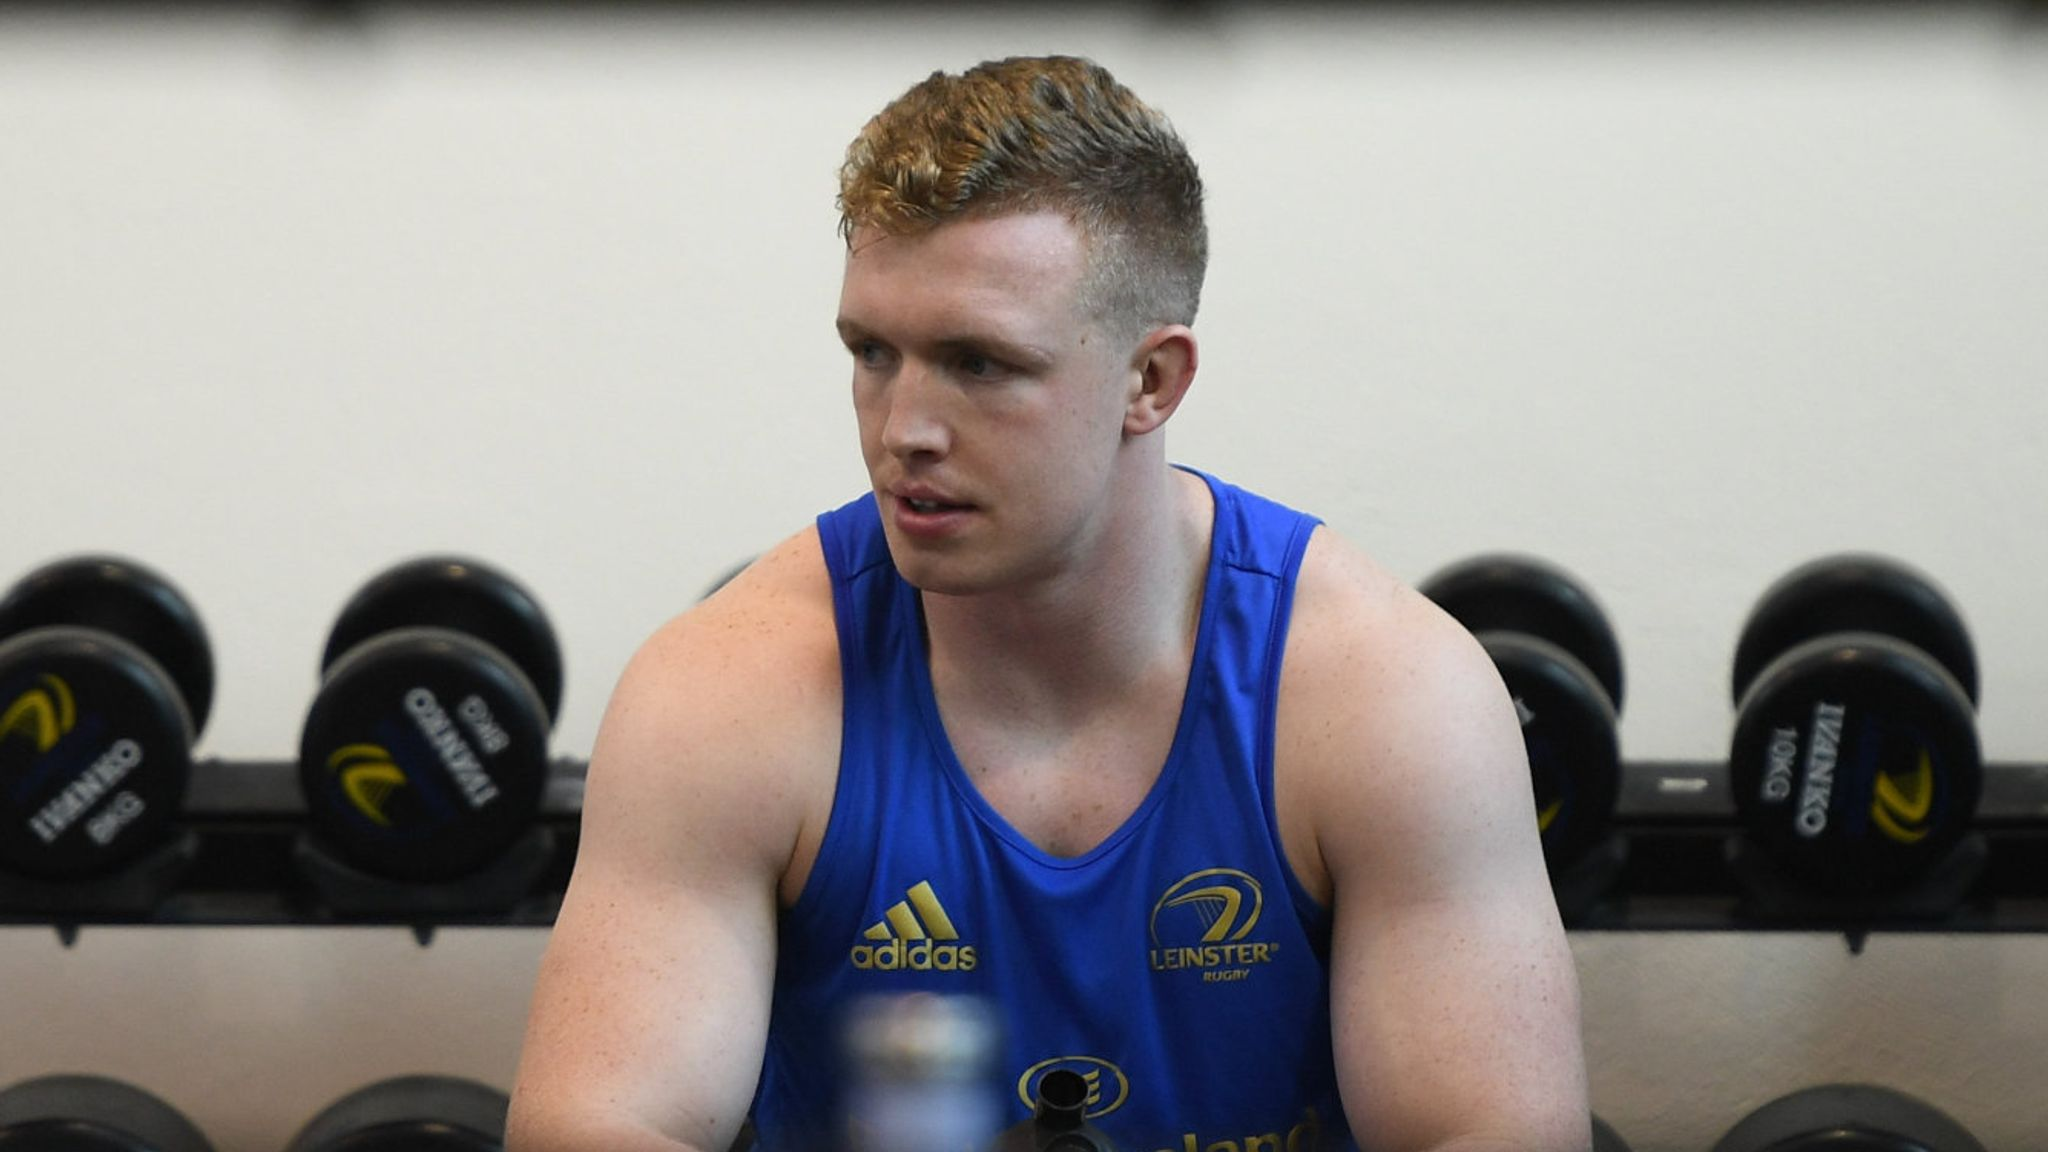 Leinster confirm Dan Leavy nearing return from knee injury | Rugby Union  News | Sky Sports